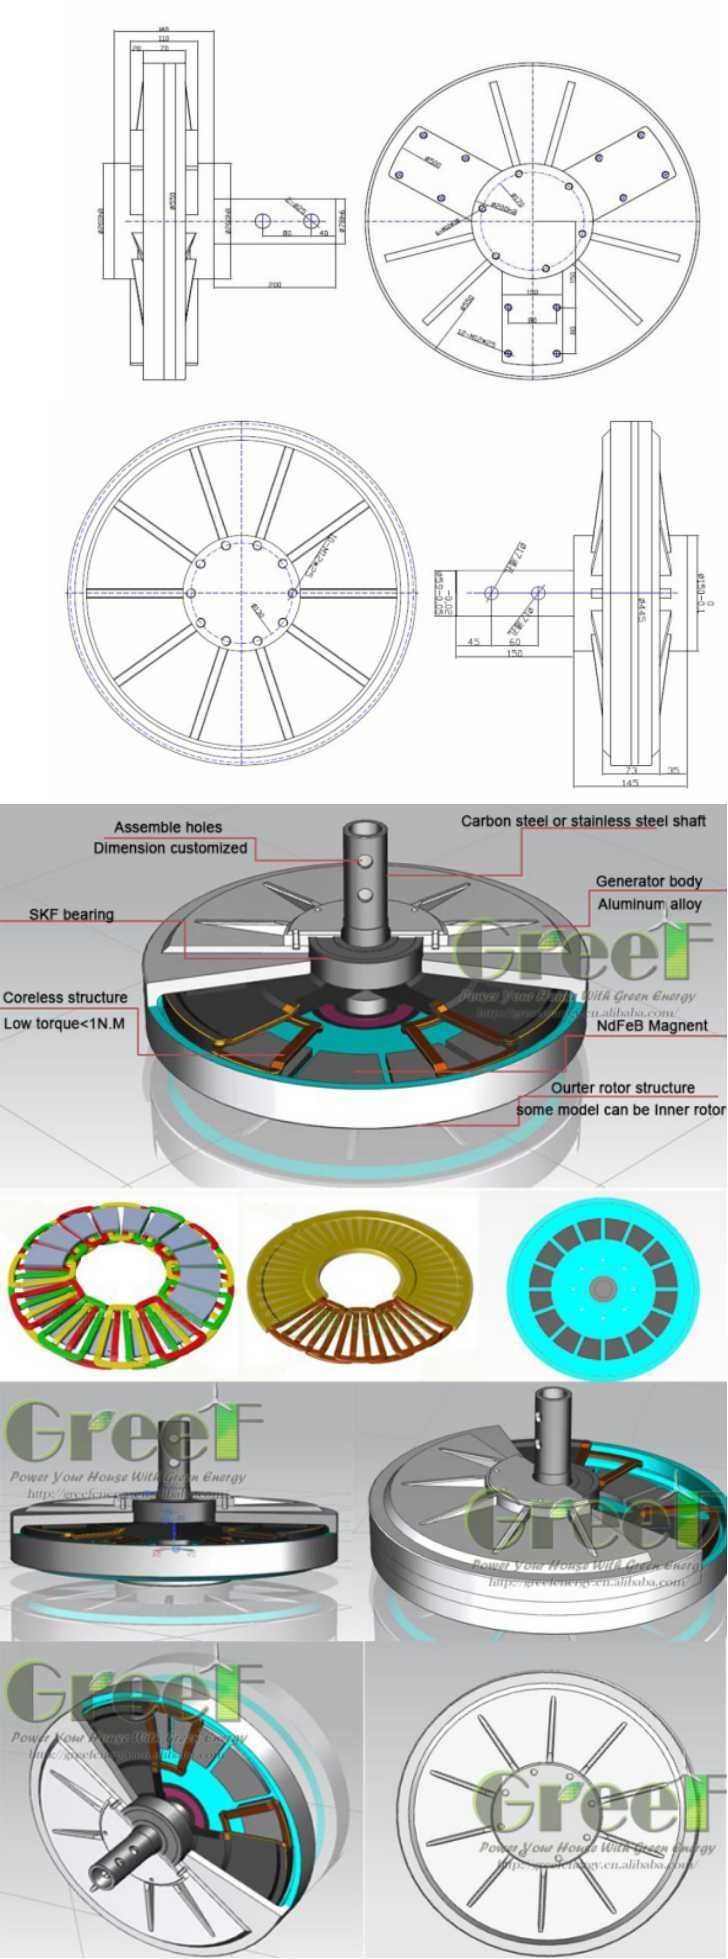 1kw 3kw 5kw 10kw Vertical Axis Wind Generator With Low Start Torque Vetryanaya Turbina Alternativnaya Energiya Solnechnaya Energiya